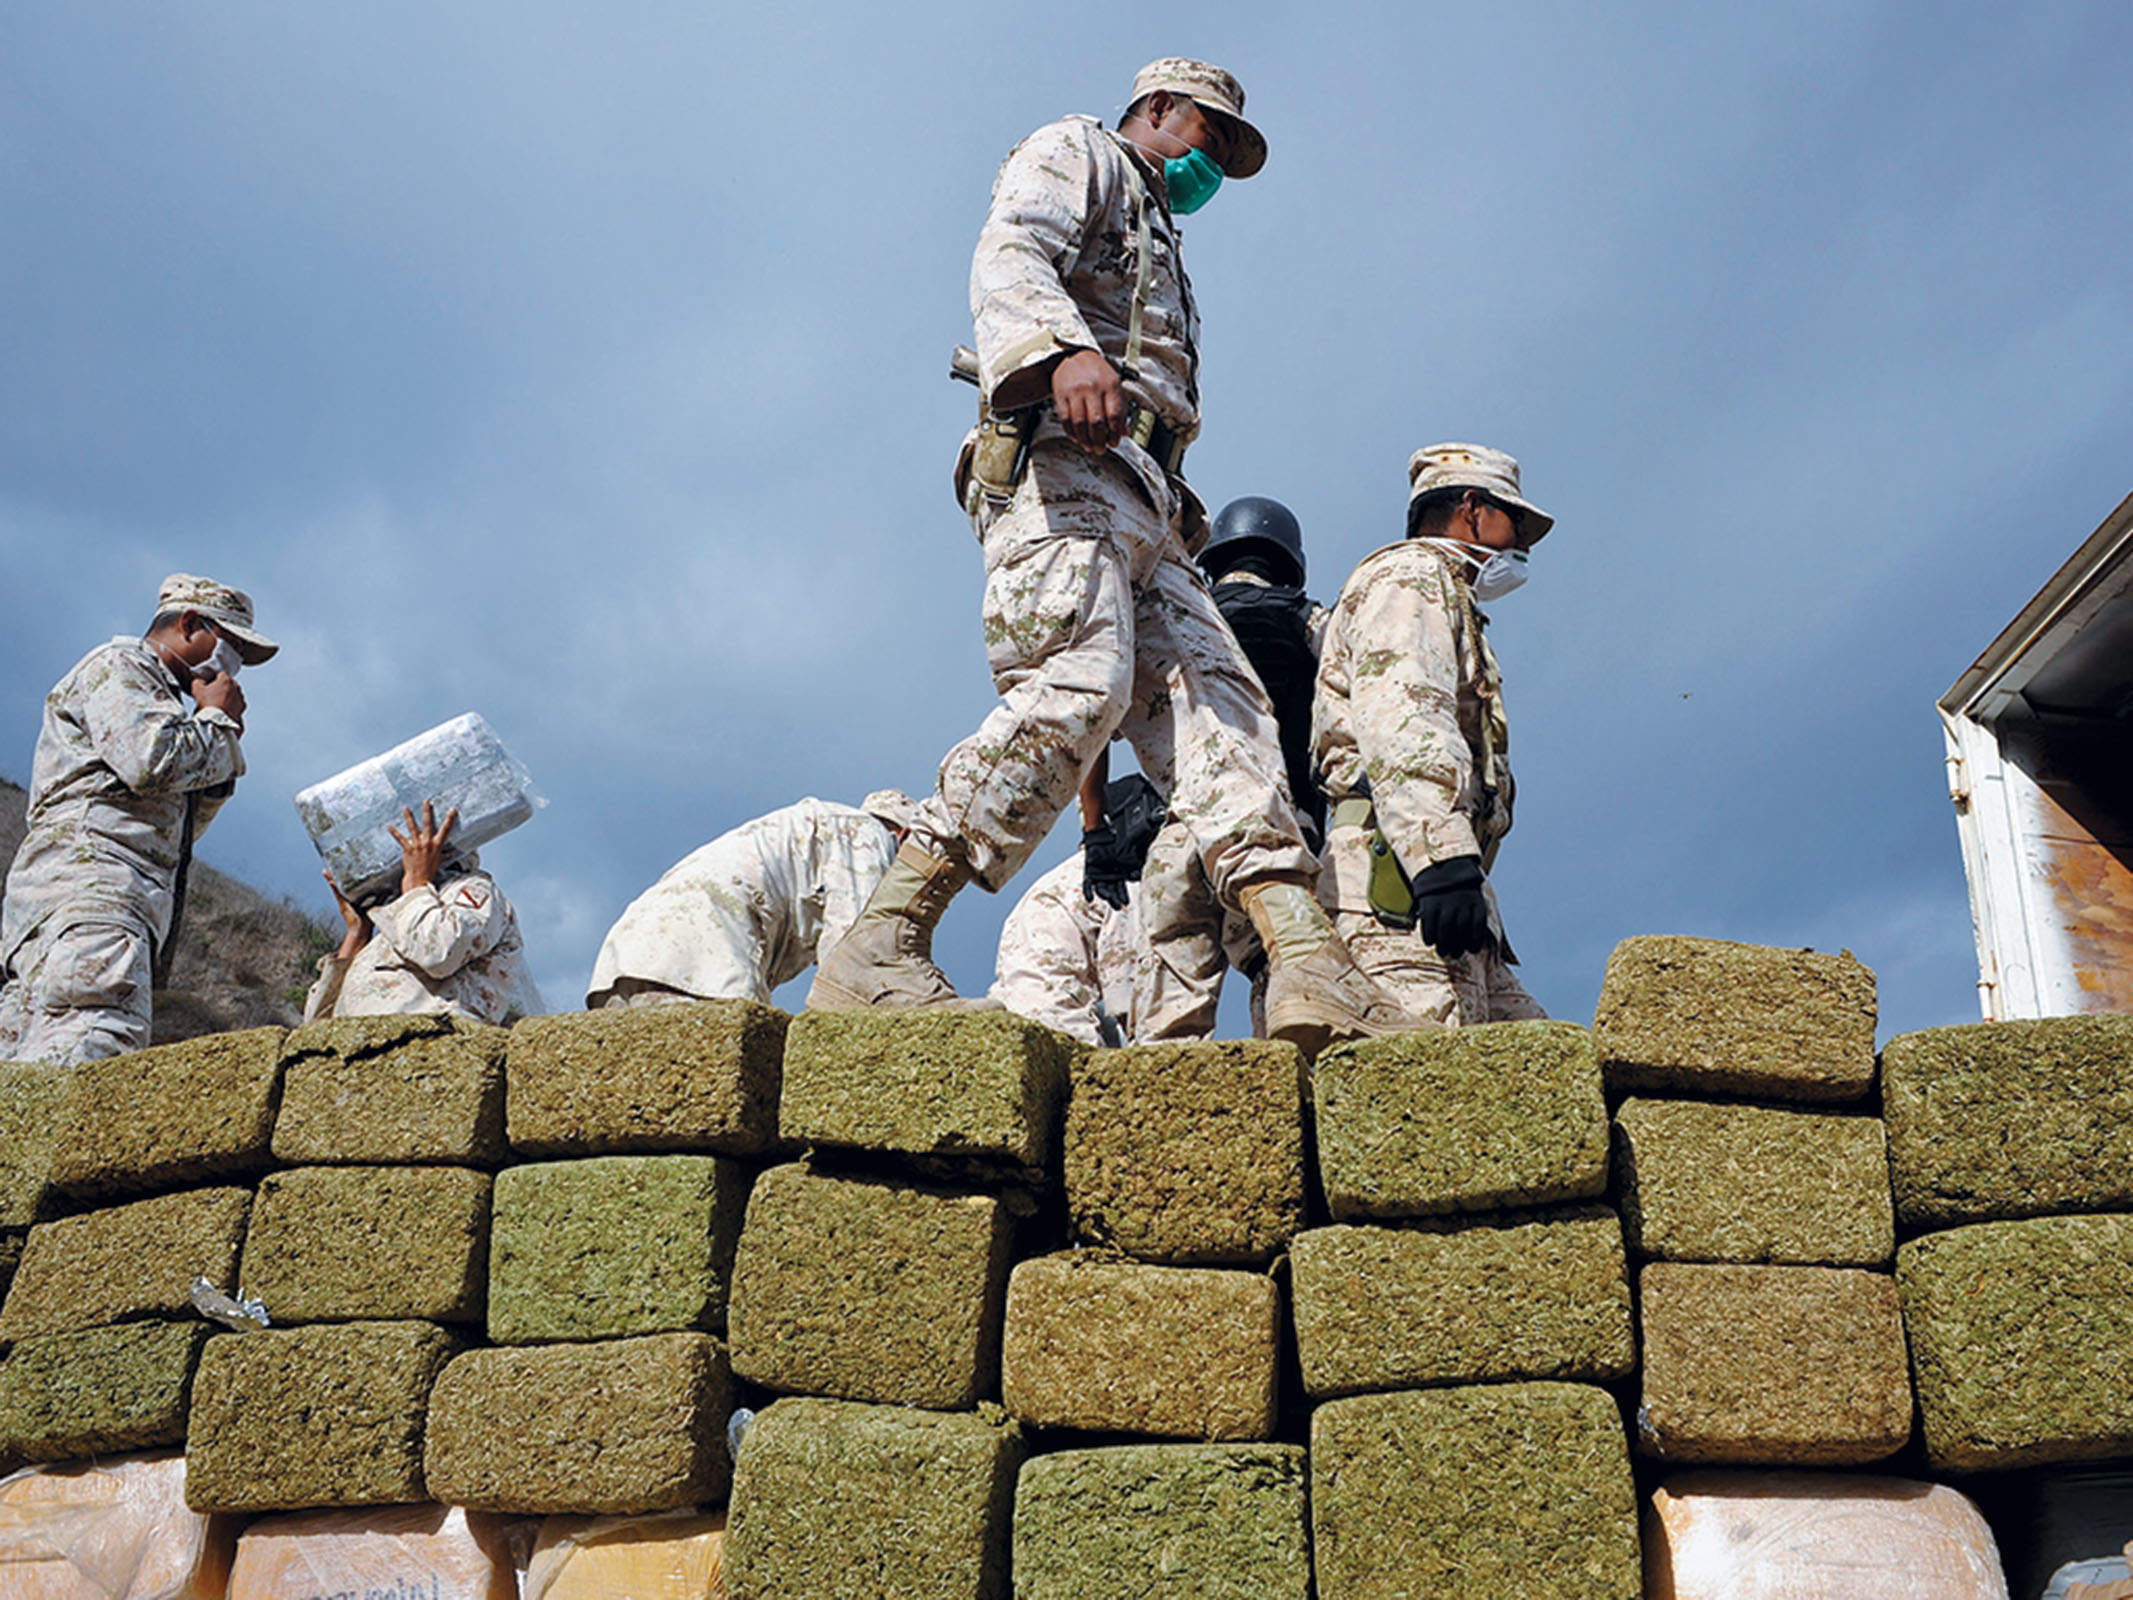 How to beat the dealer: two different approaches to the war on drugs